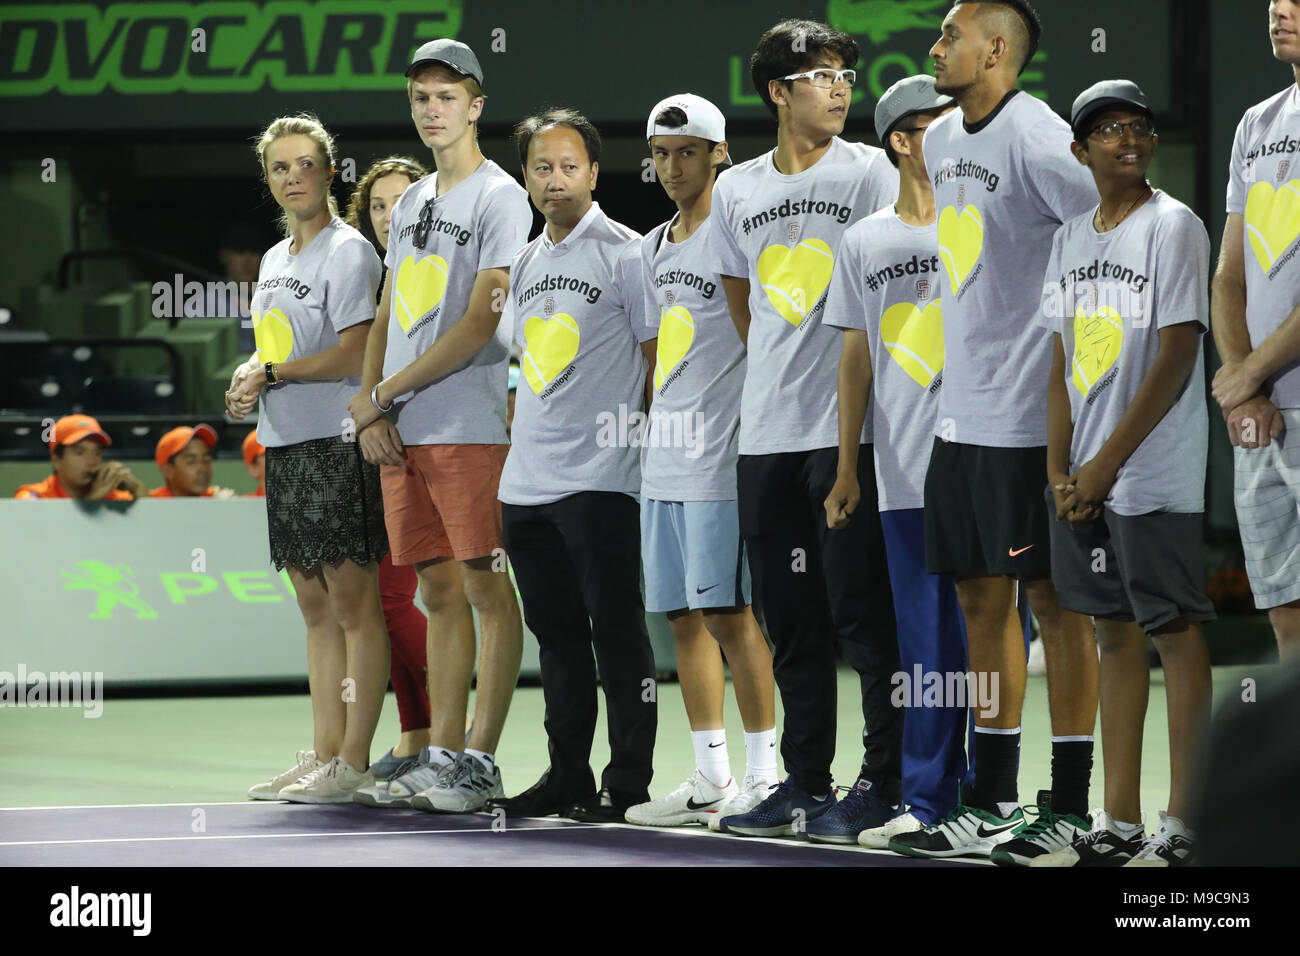 KEY BISCAYNE, FL - MARCH 24: Angelique Menses of Marjory Stoneman Douglas High School stands with Tournament director James Blake after singing the National Anthem with members of the boys and girls tennis team and the players from the ATP and WTA including Nick Kyrgios and  during Day 6 of the Miami Open at the Crandon Park Tennis Center on March 24, 2018 in Key Biscayne, Florida.    People:  Atmosphere - Stock Image